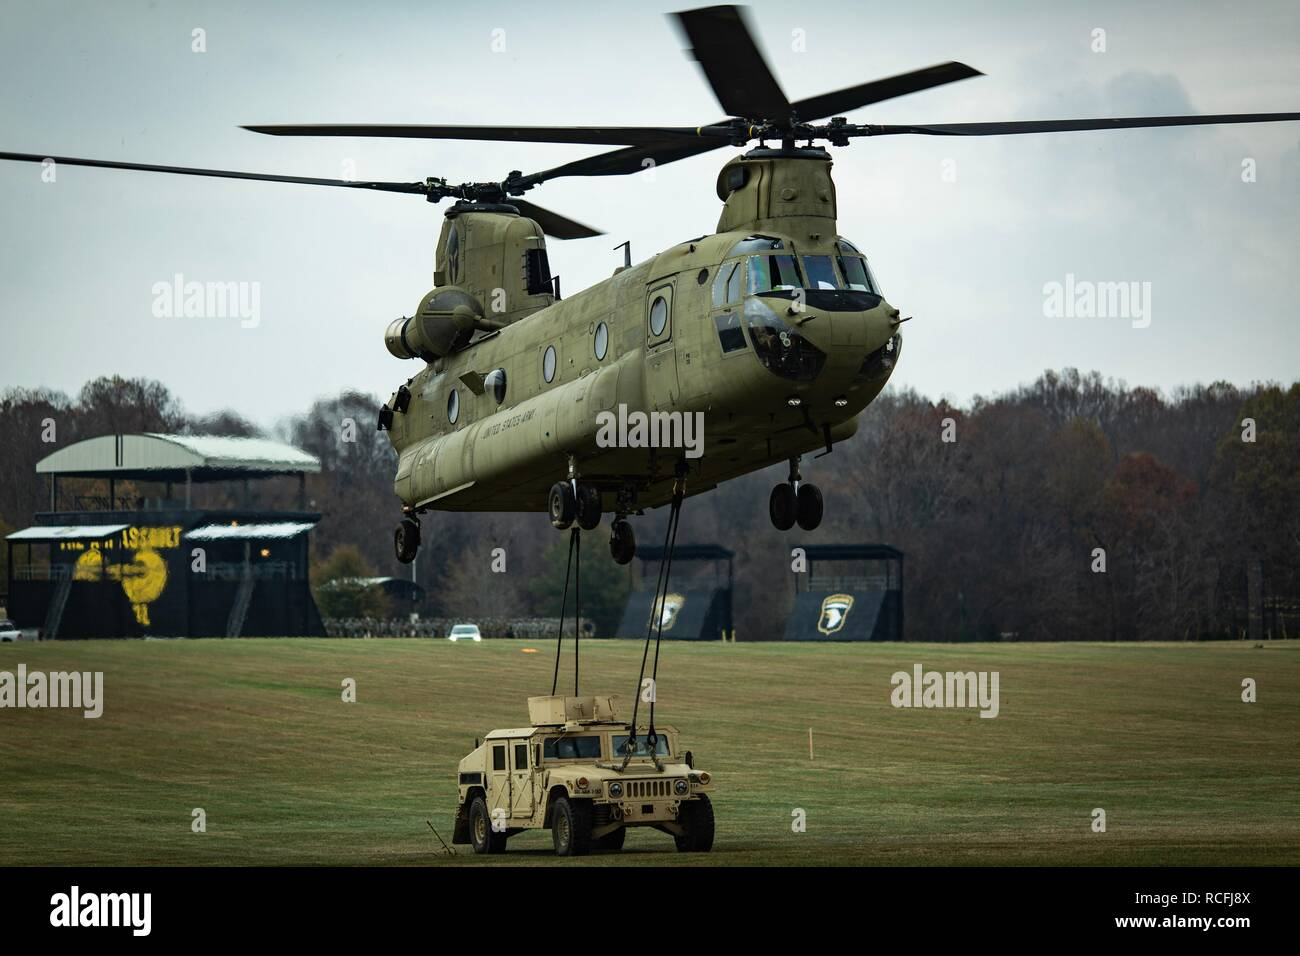 Fort Campbell Ky Stock Photos & Fort Campbell Ky Stock Images - Alamy